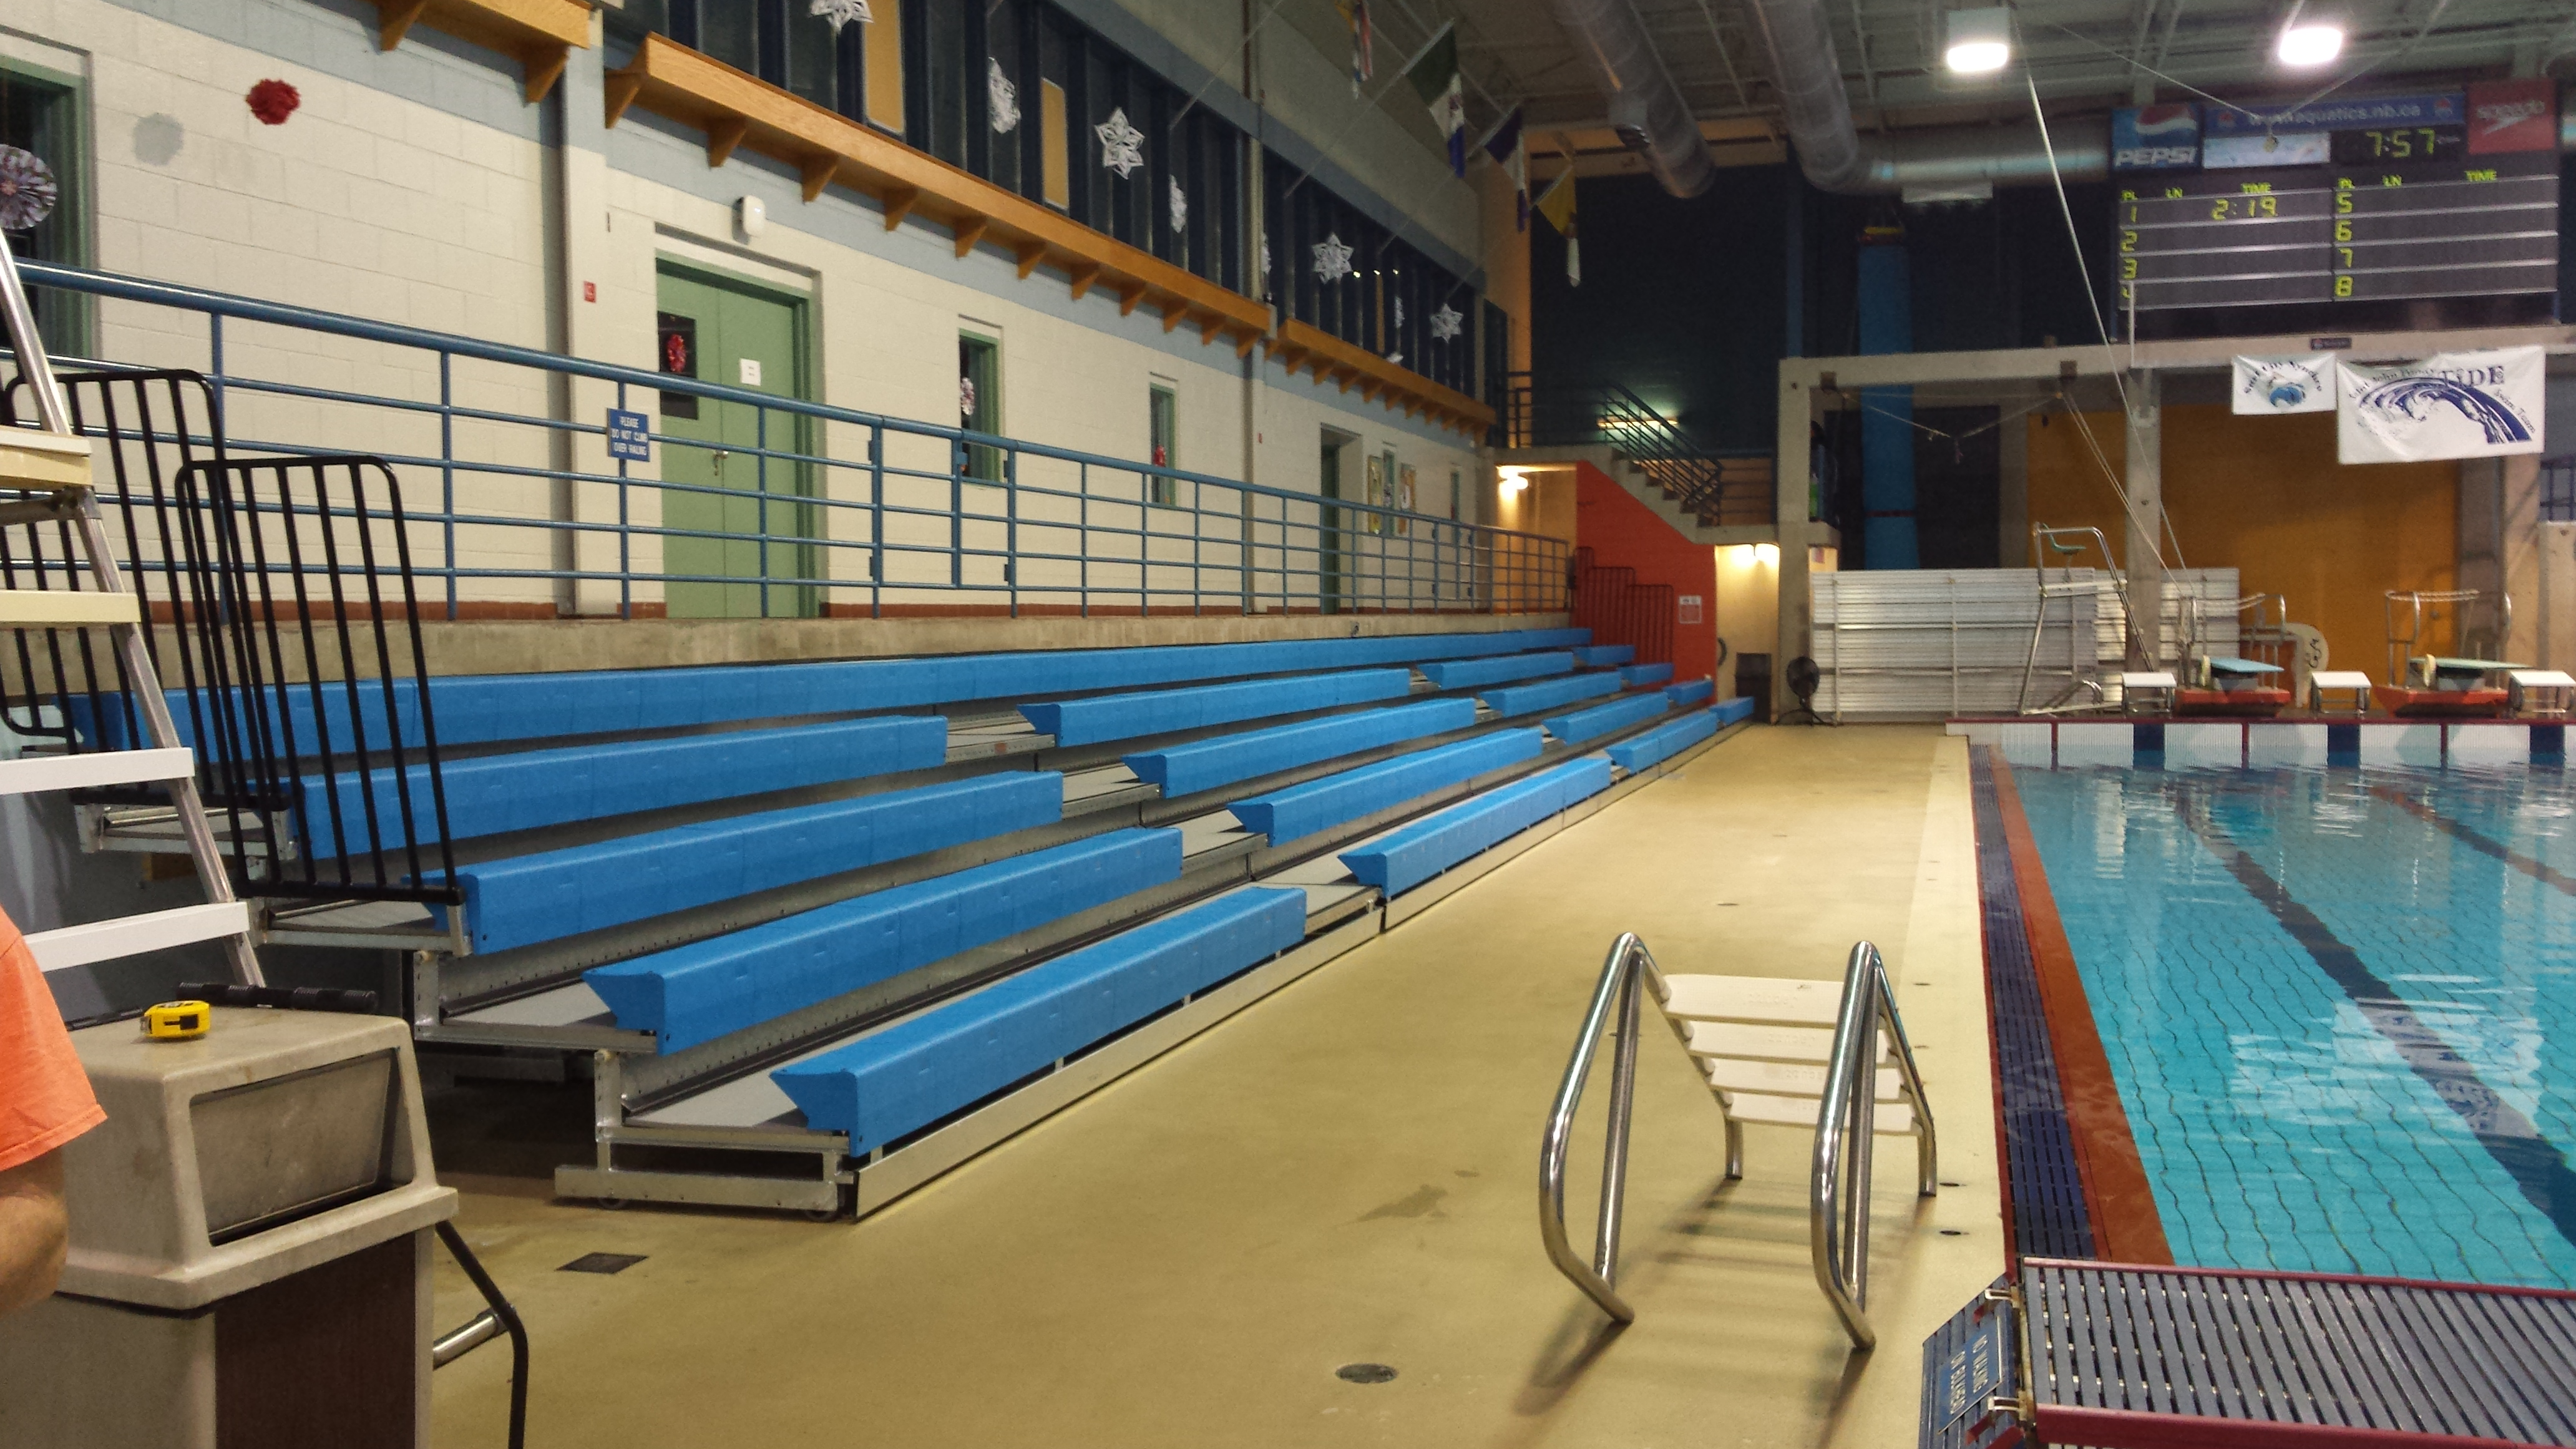 High Humidity Telescopic Pool Bleachers For The City Of Saint John